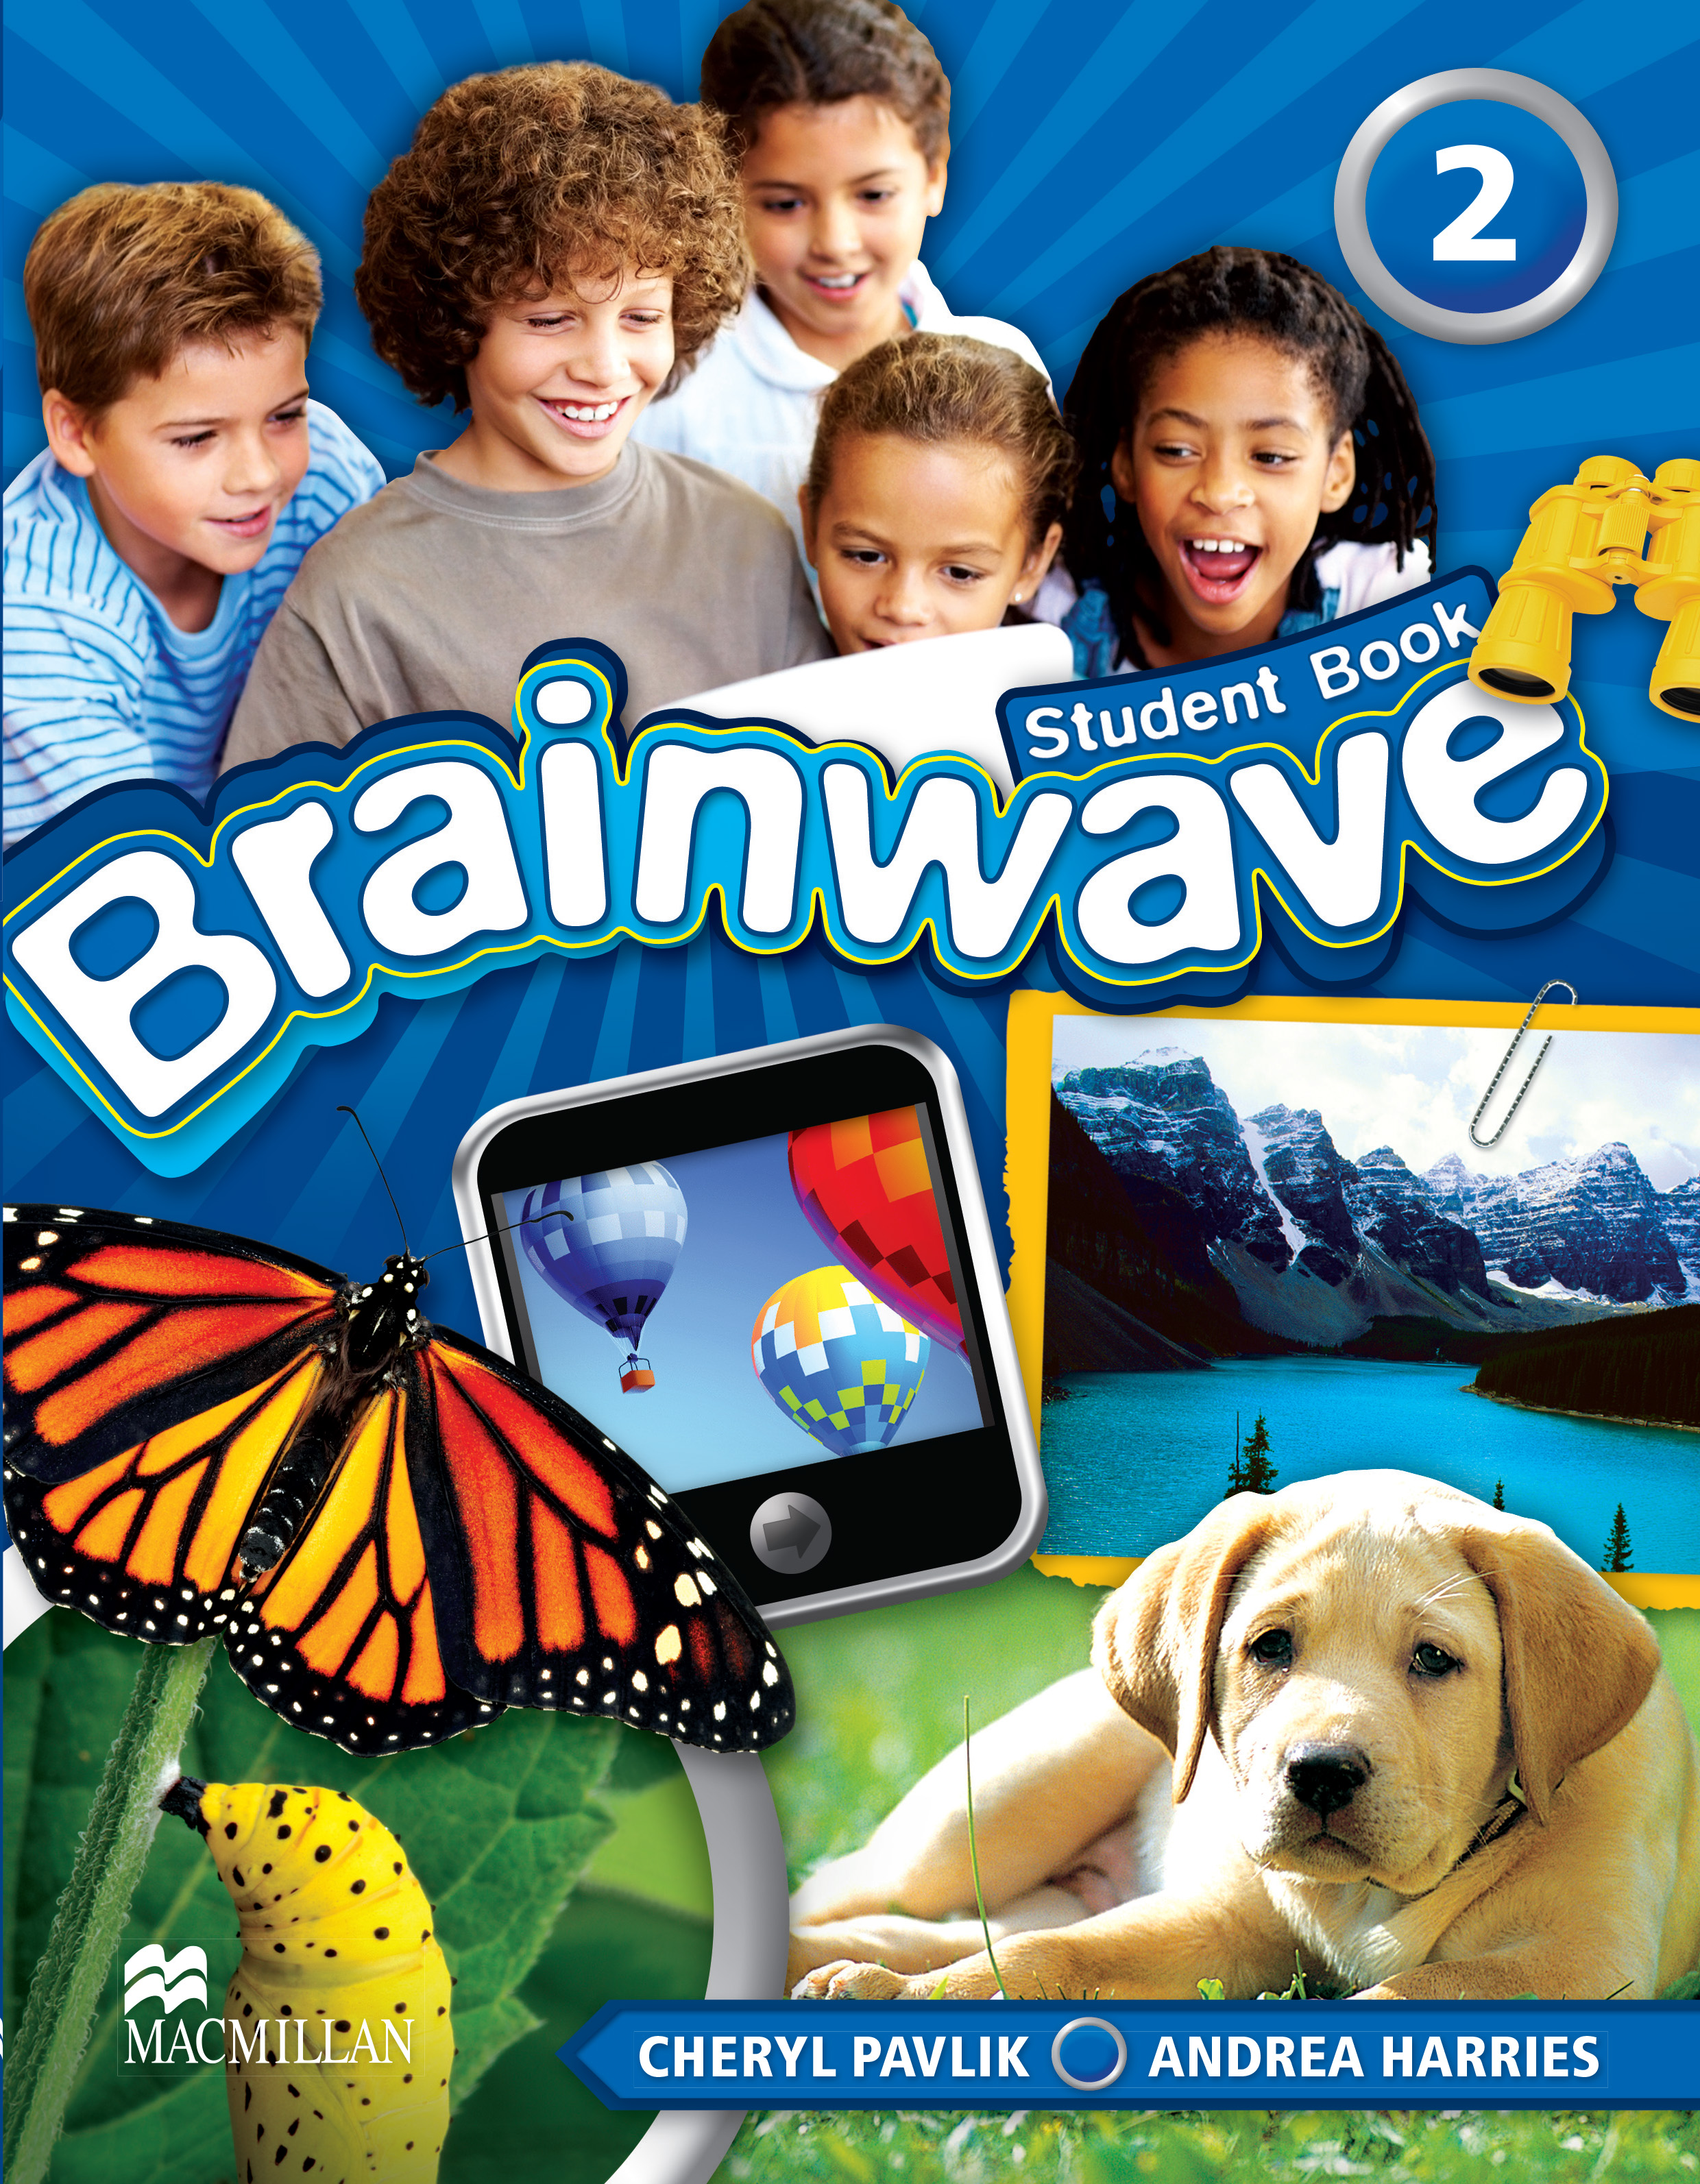 Brainwave 2 Student Book Pack